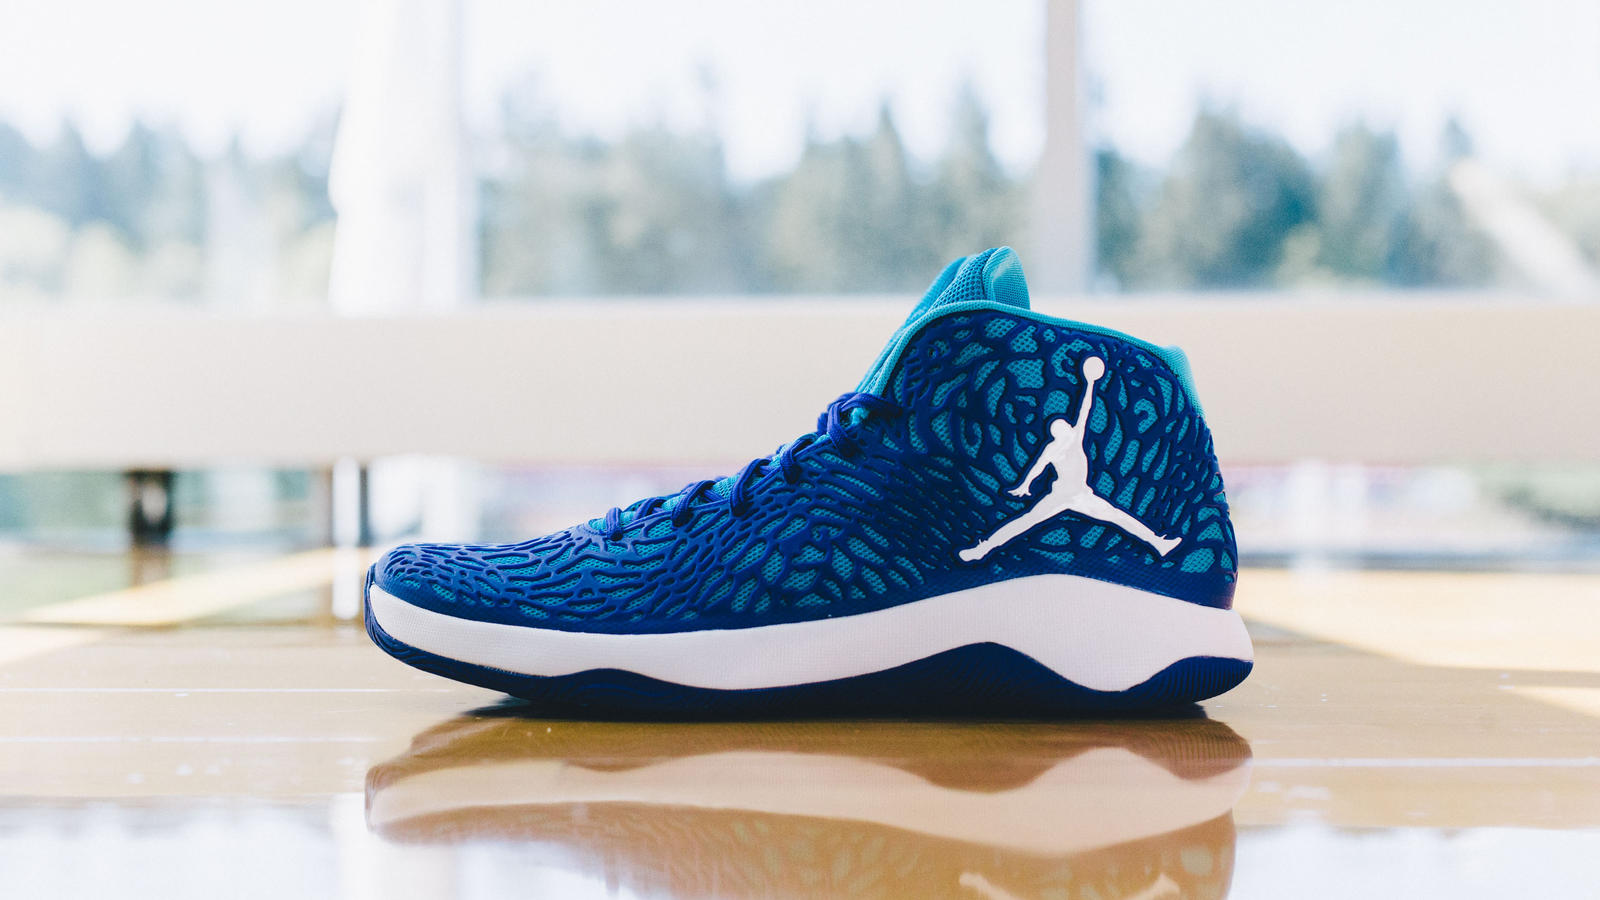 Jordan ultrafly pe blue 3 hd 1600